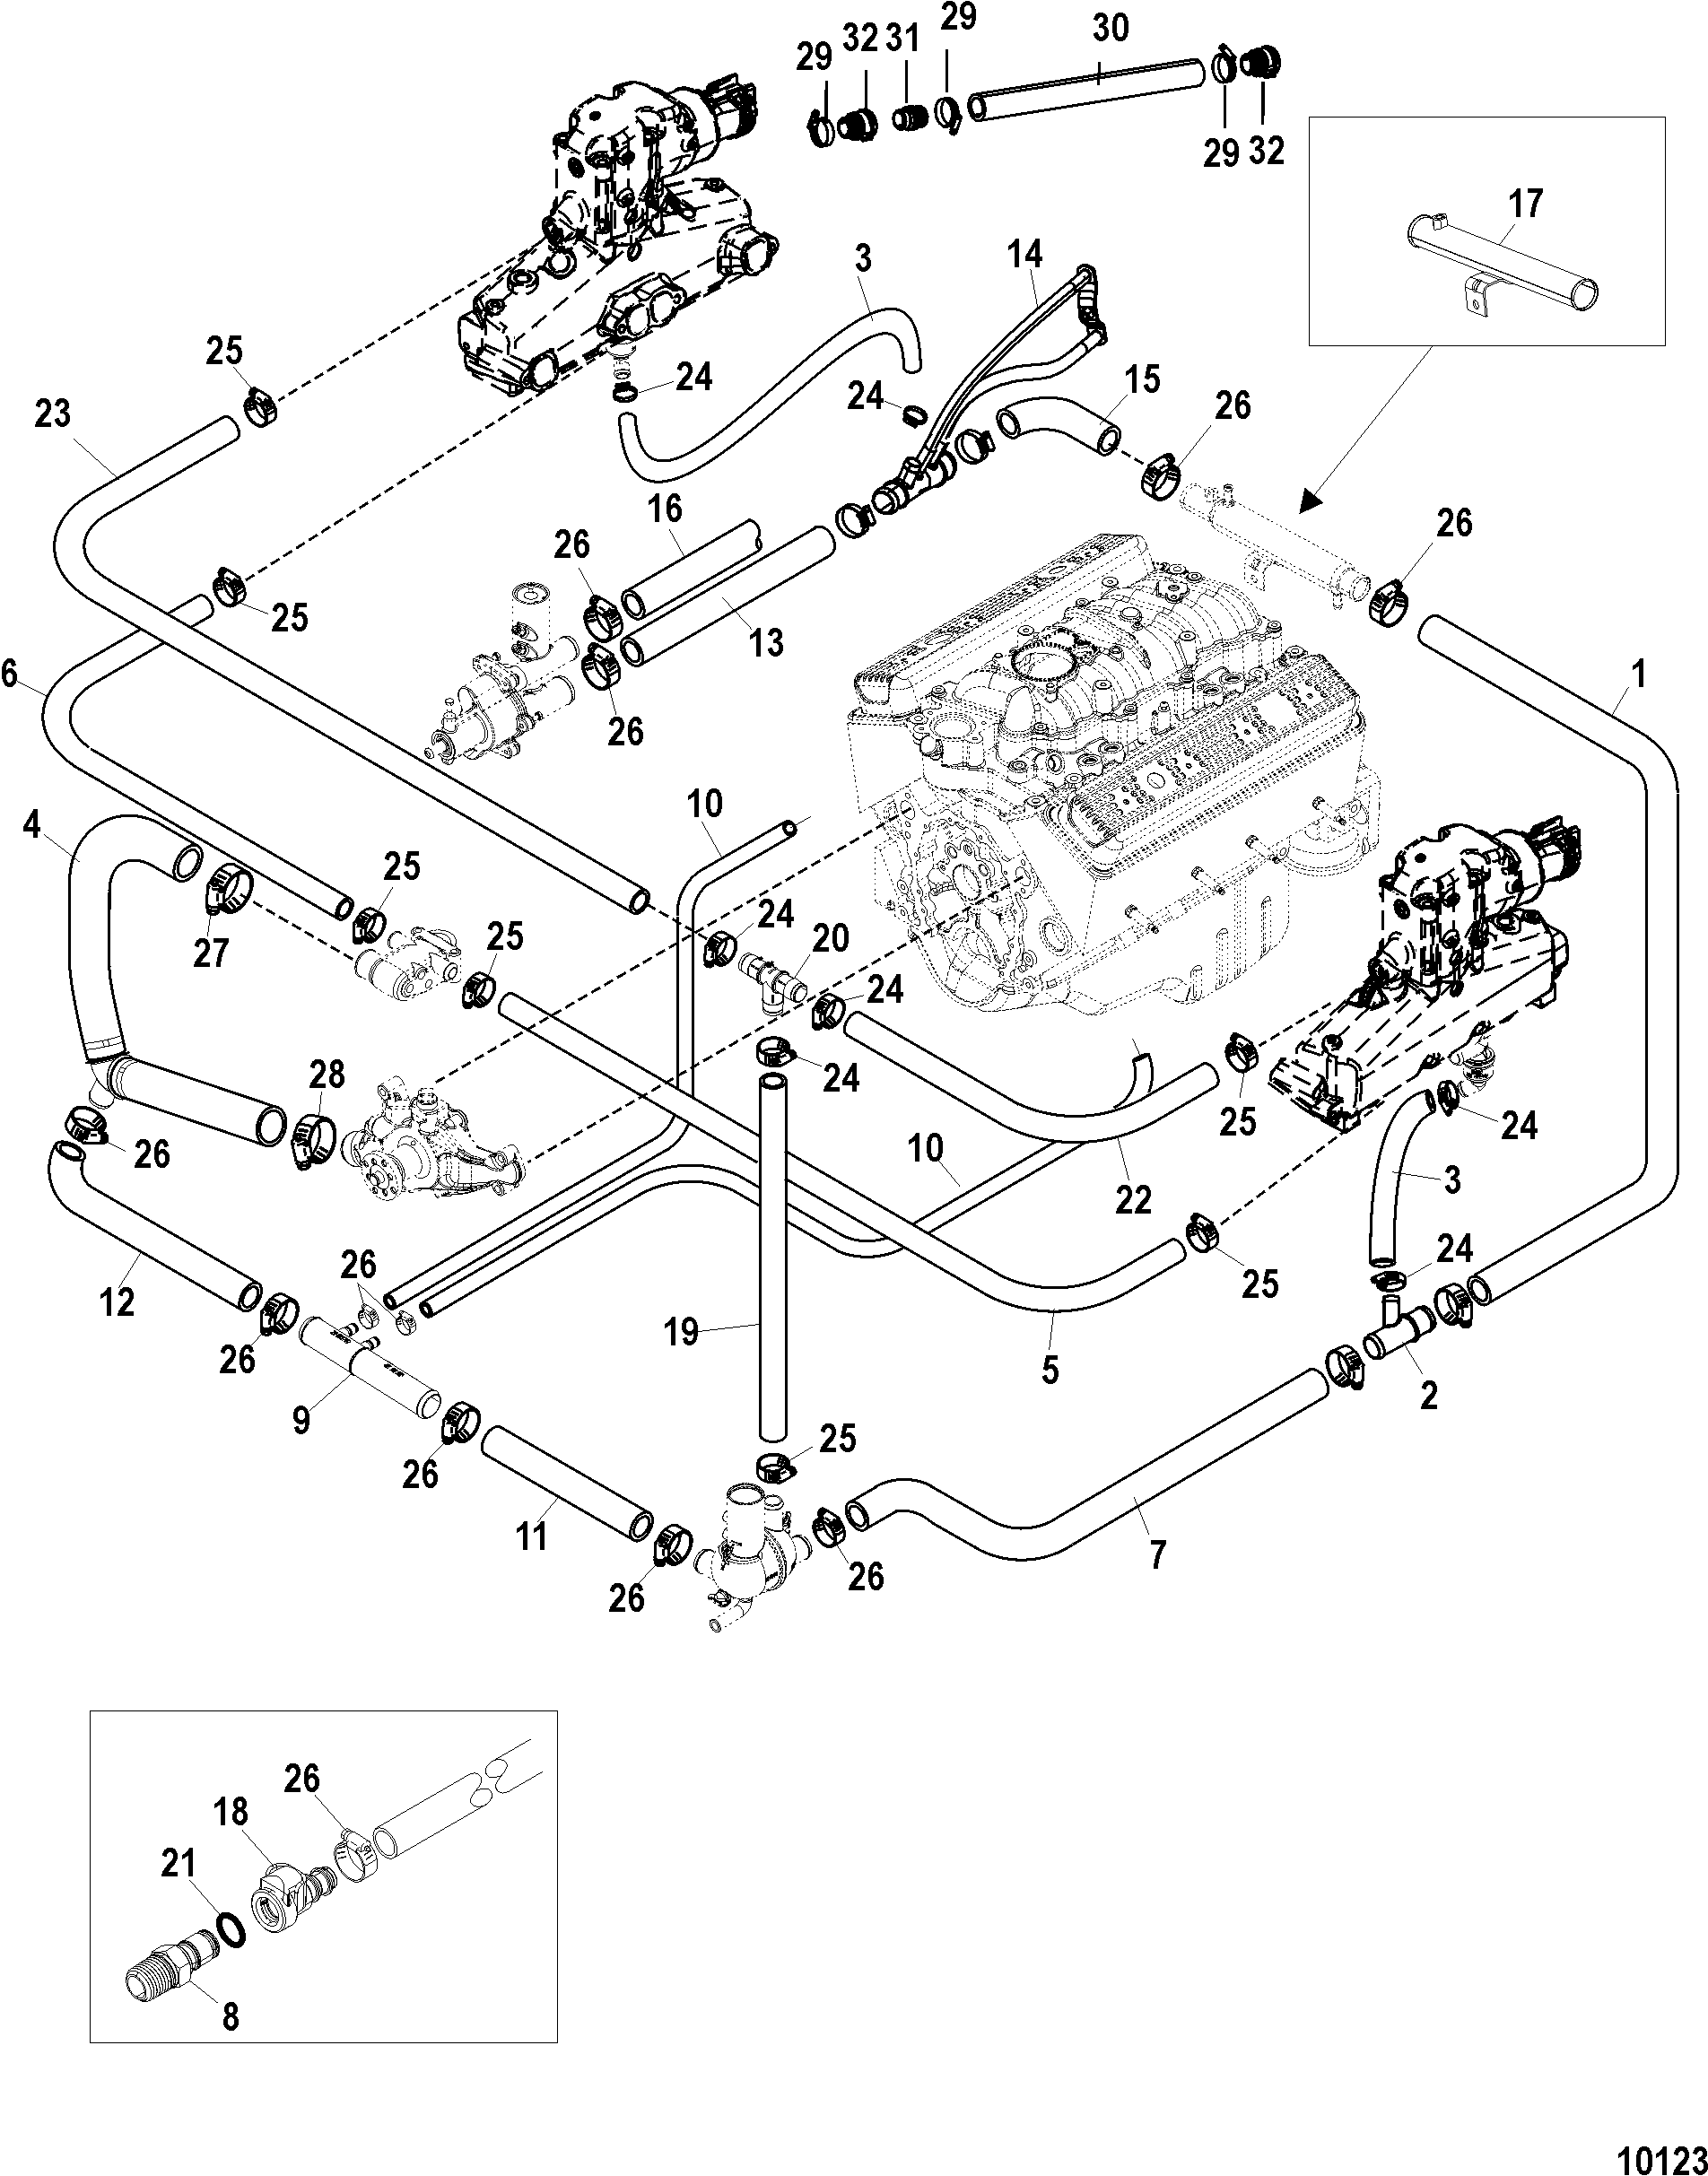 hight resolution of mercruiser engine cooling diagram wiring library 350 mag mpi alpha bravo serial 0w060000 thru 0w309999 standard